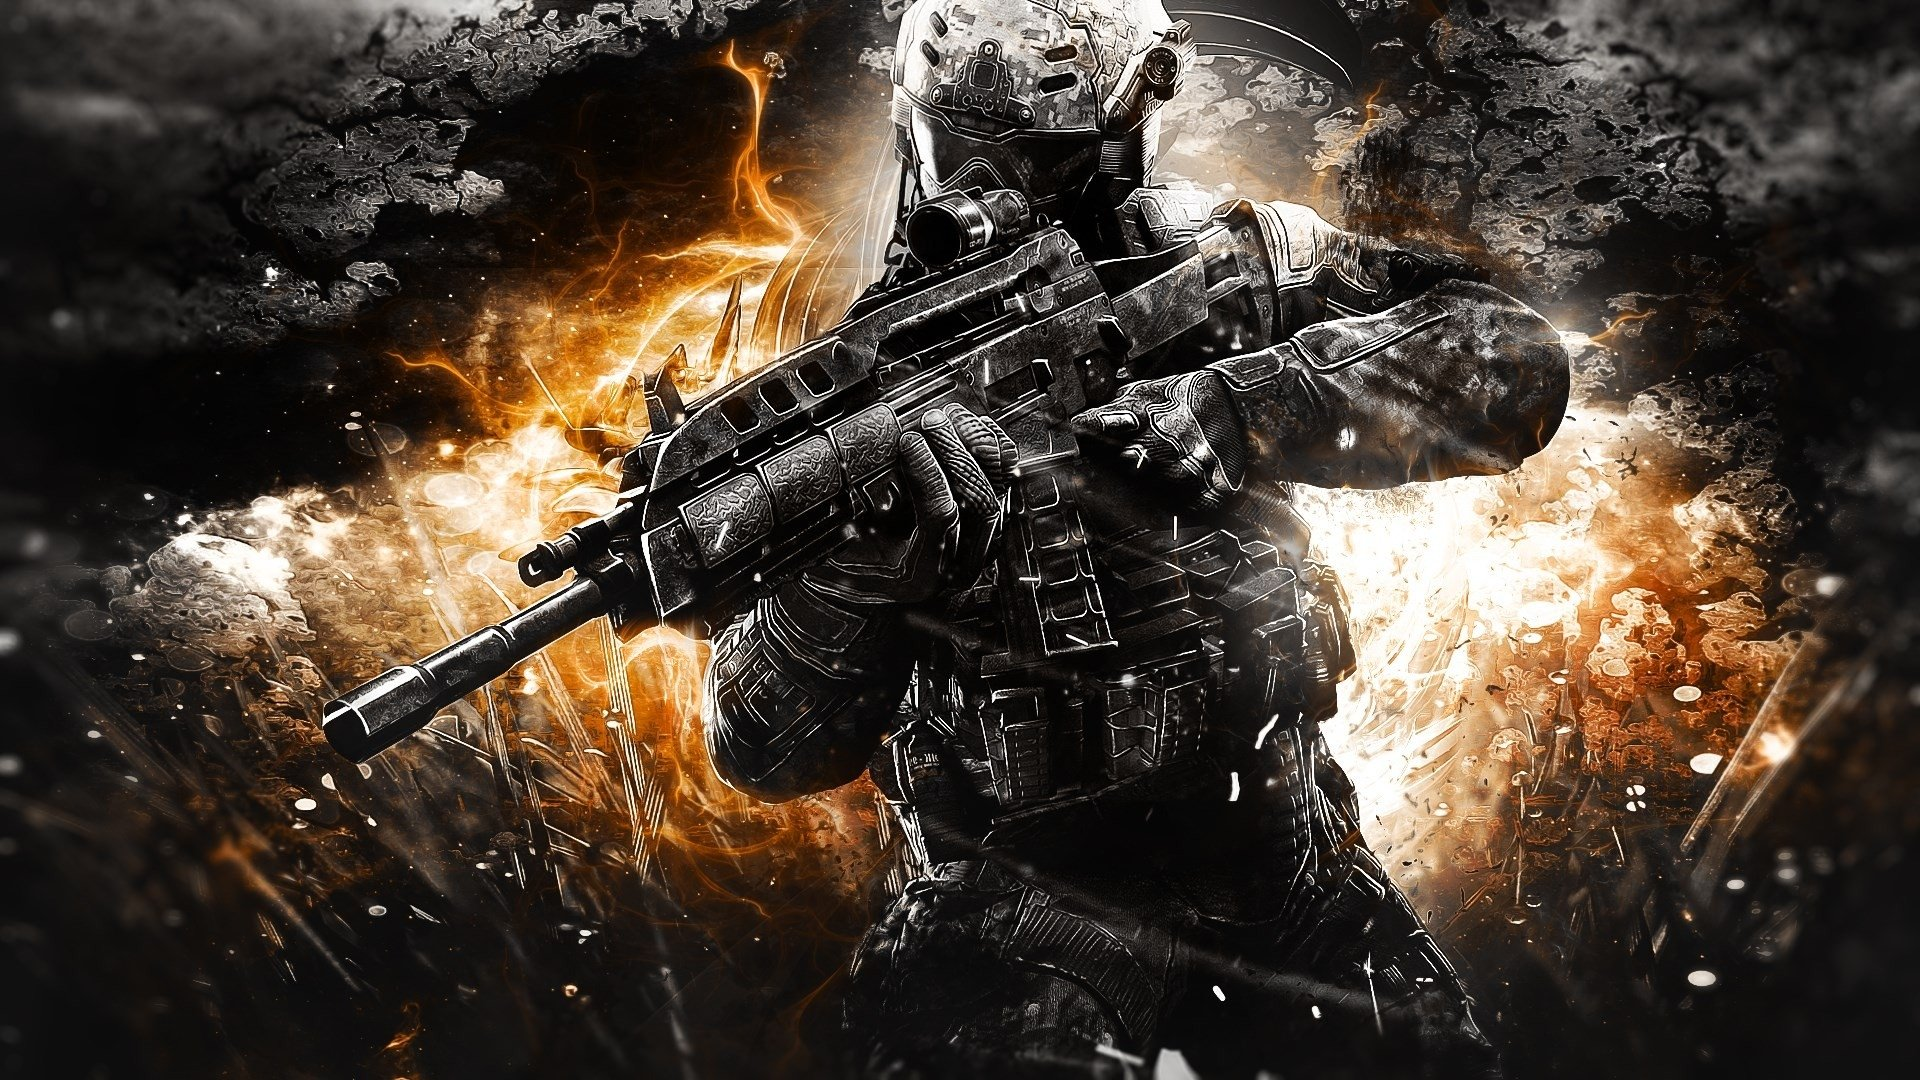 call of duty black ops 2 wallpaper - sf wallpaper